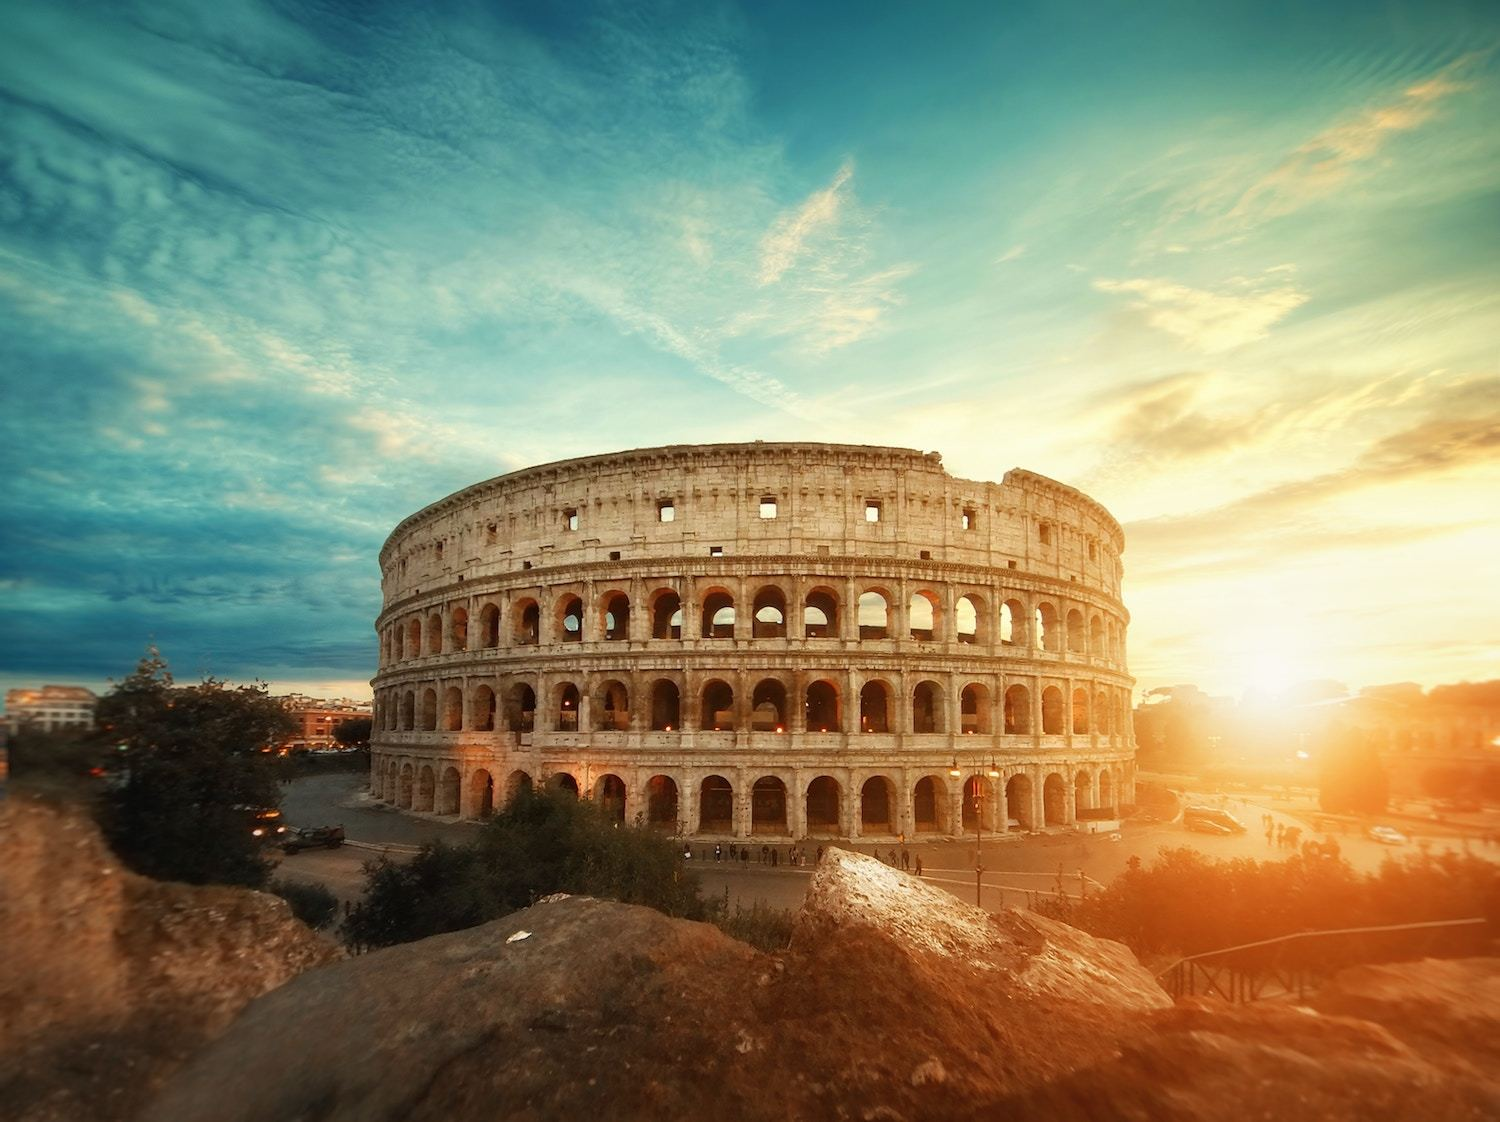 Coloseum - Italy Itinerary 10 Days